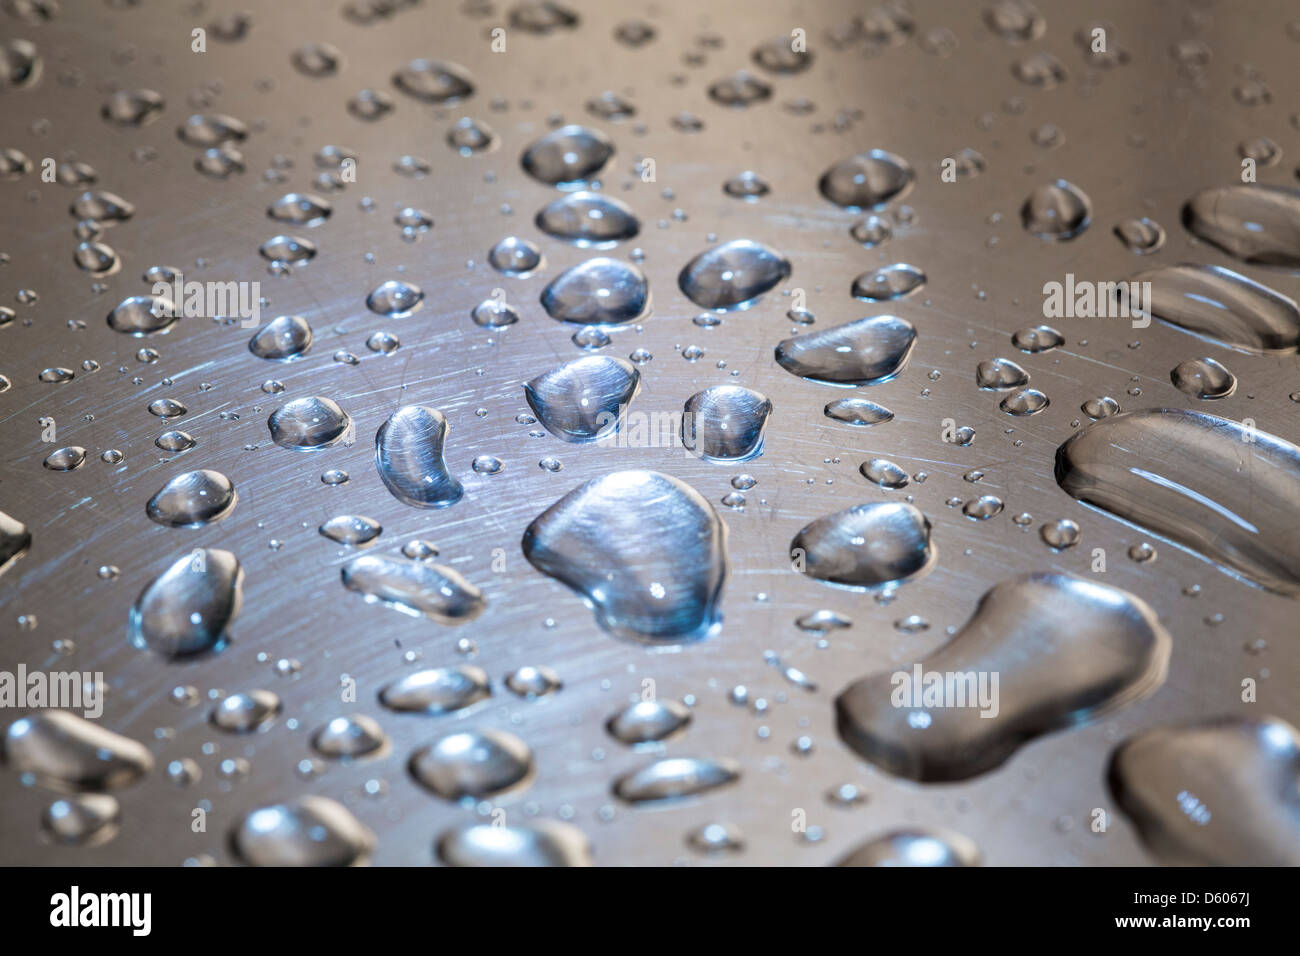 Water drops on a metal surface. Stock Photo